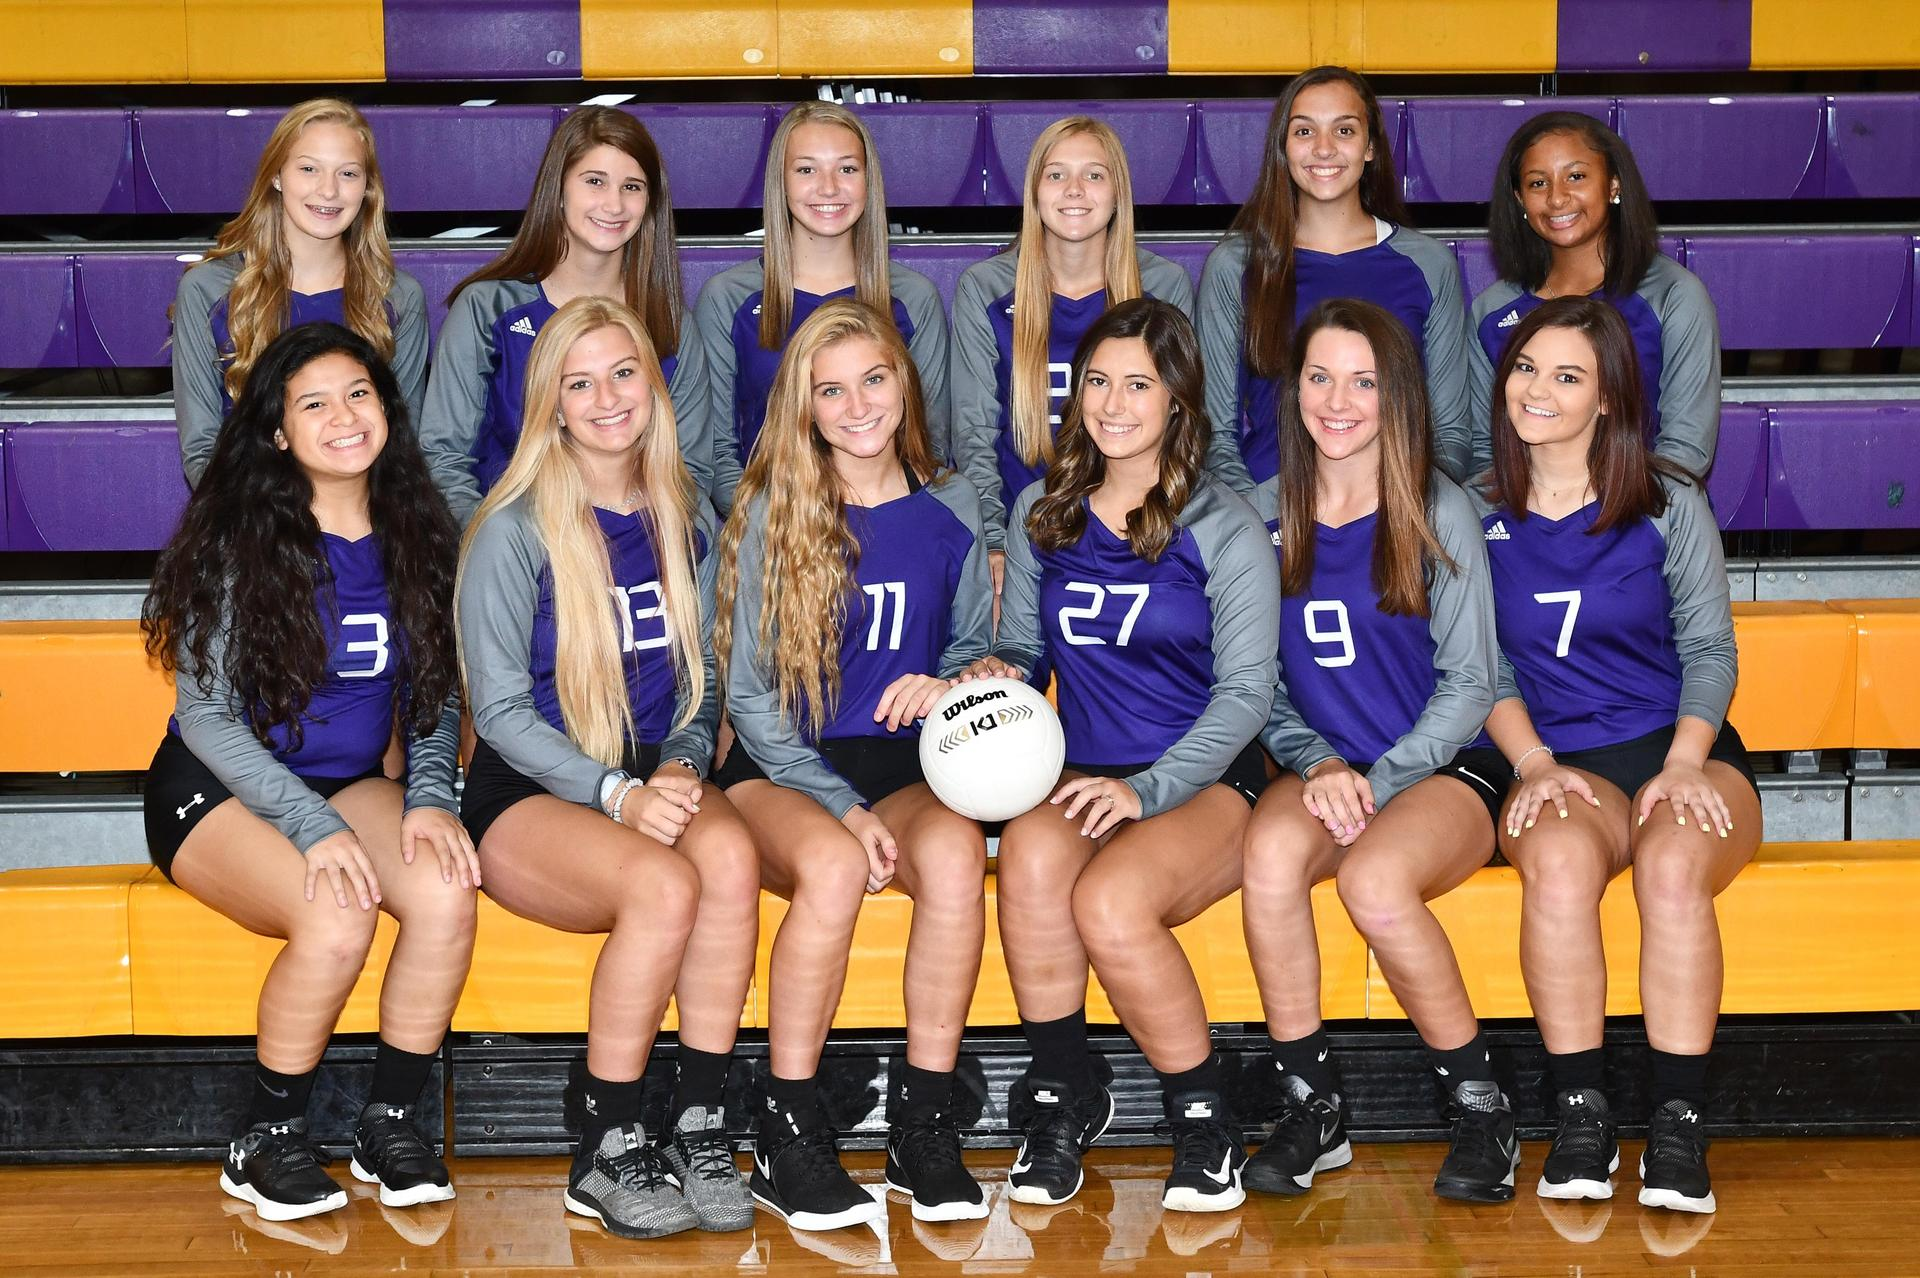 The Varsity Volleyball team poses for a team picture on purple and gold bleachers